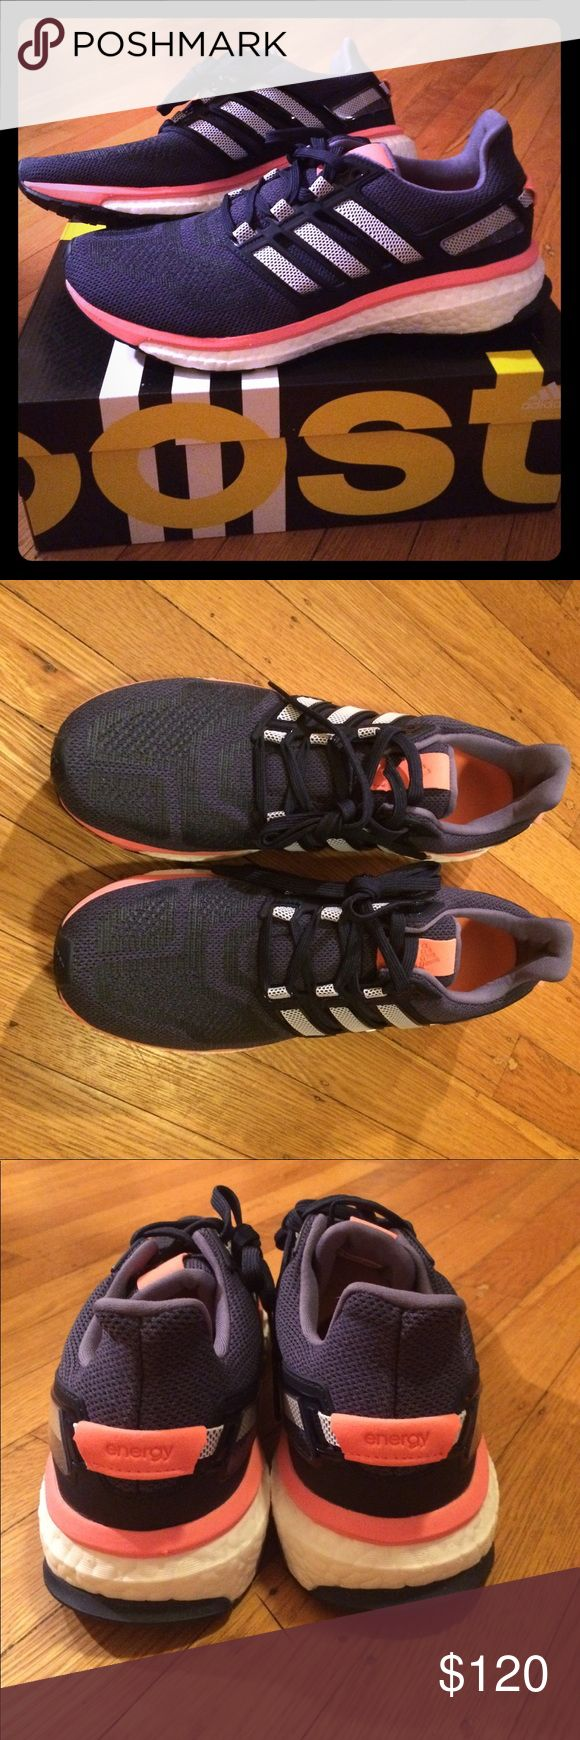 NIB! Adidas Energy Boost Blue and coral Adidas knit upper with Boost technology midsole. Worth the hype! adidas Shoes Athletic Shoes